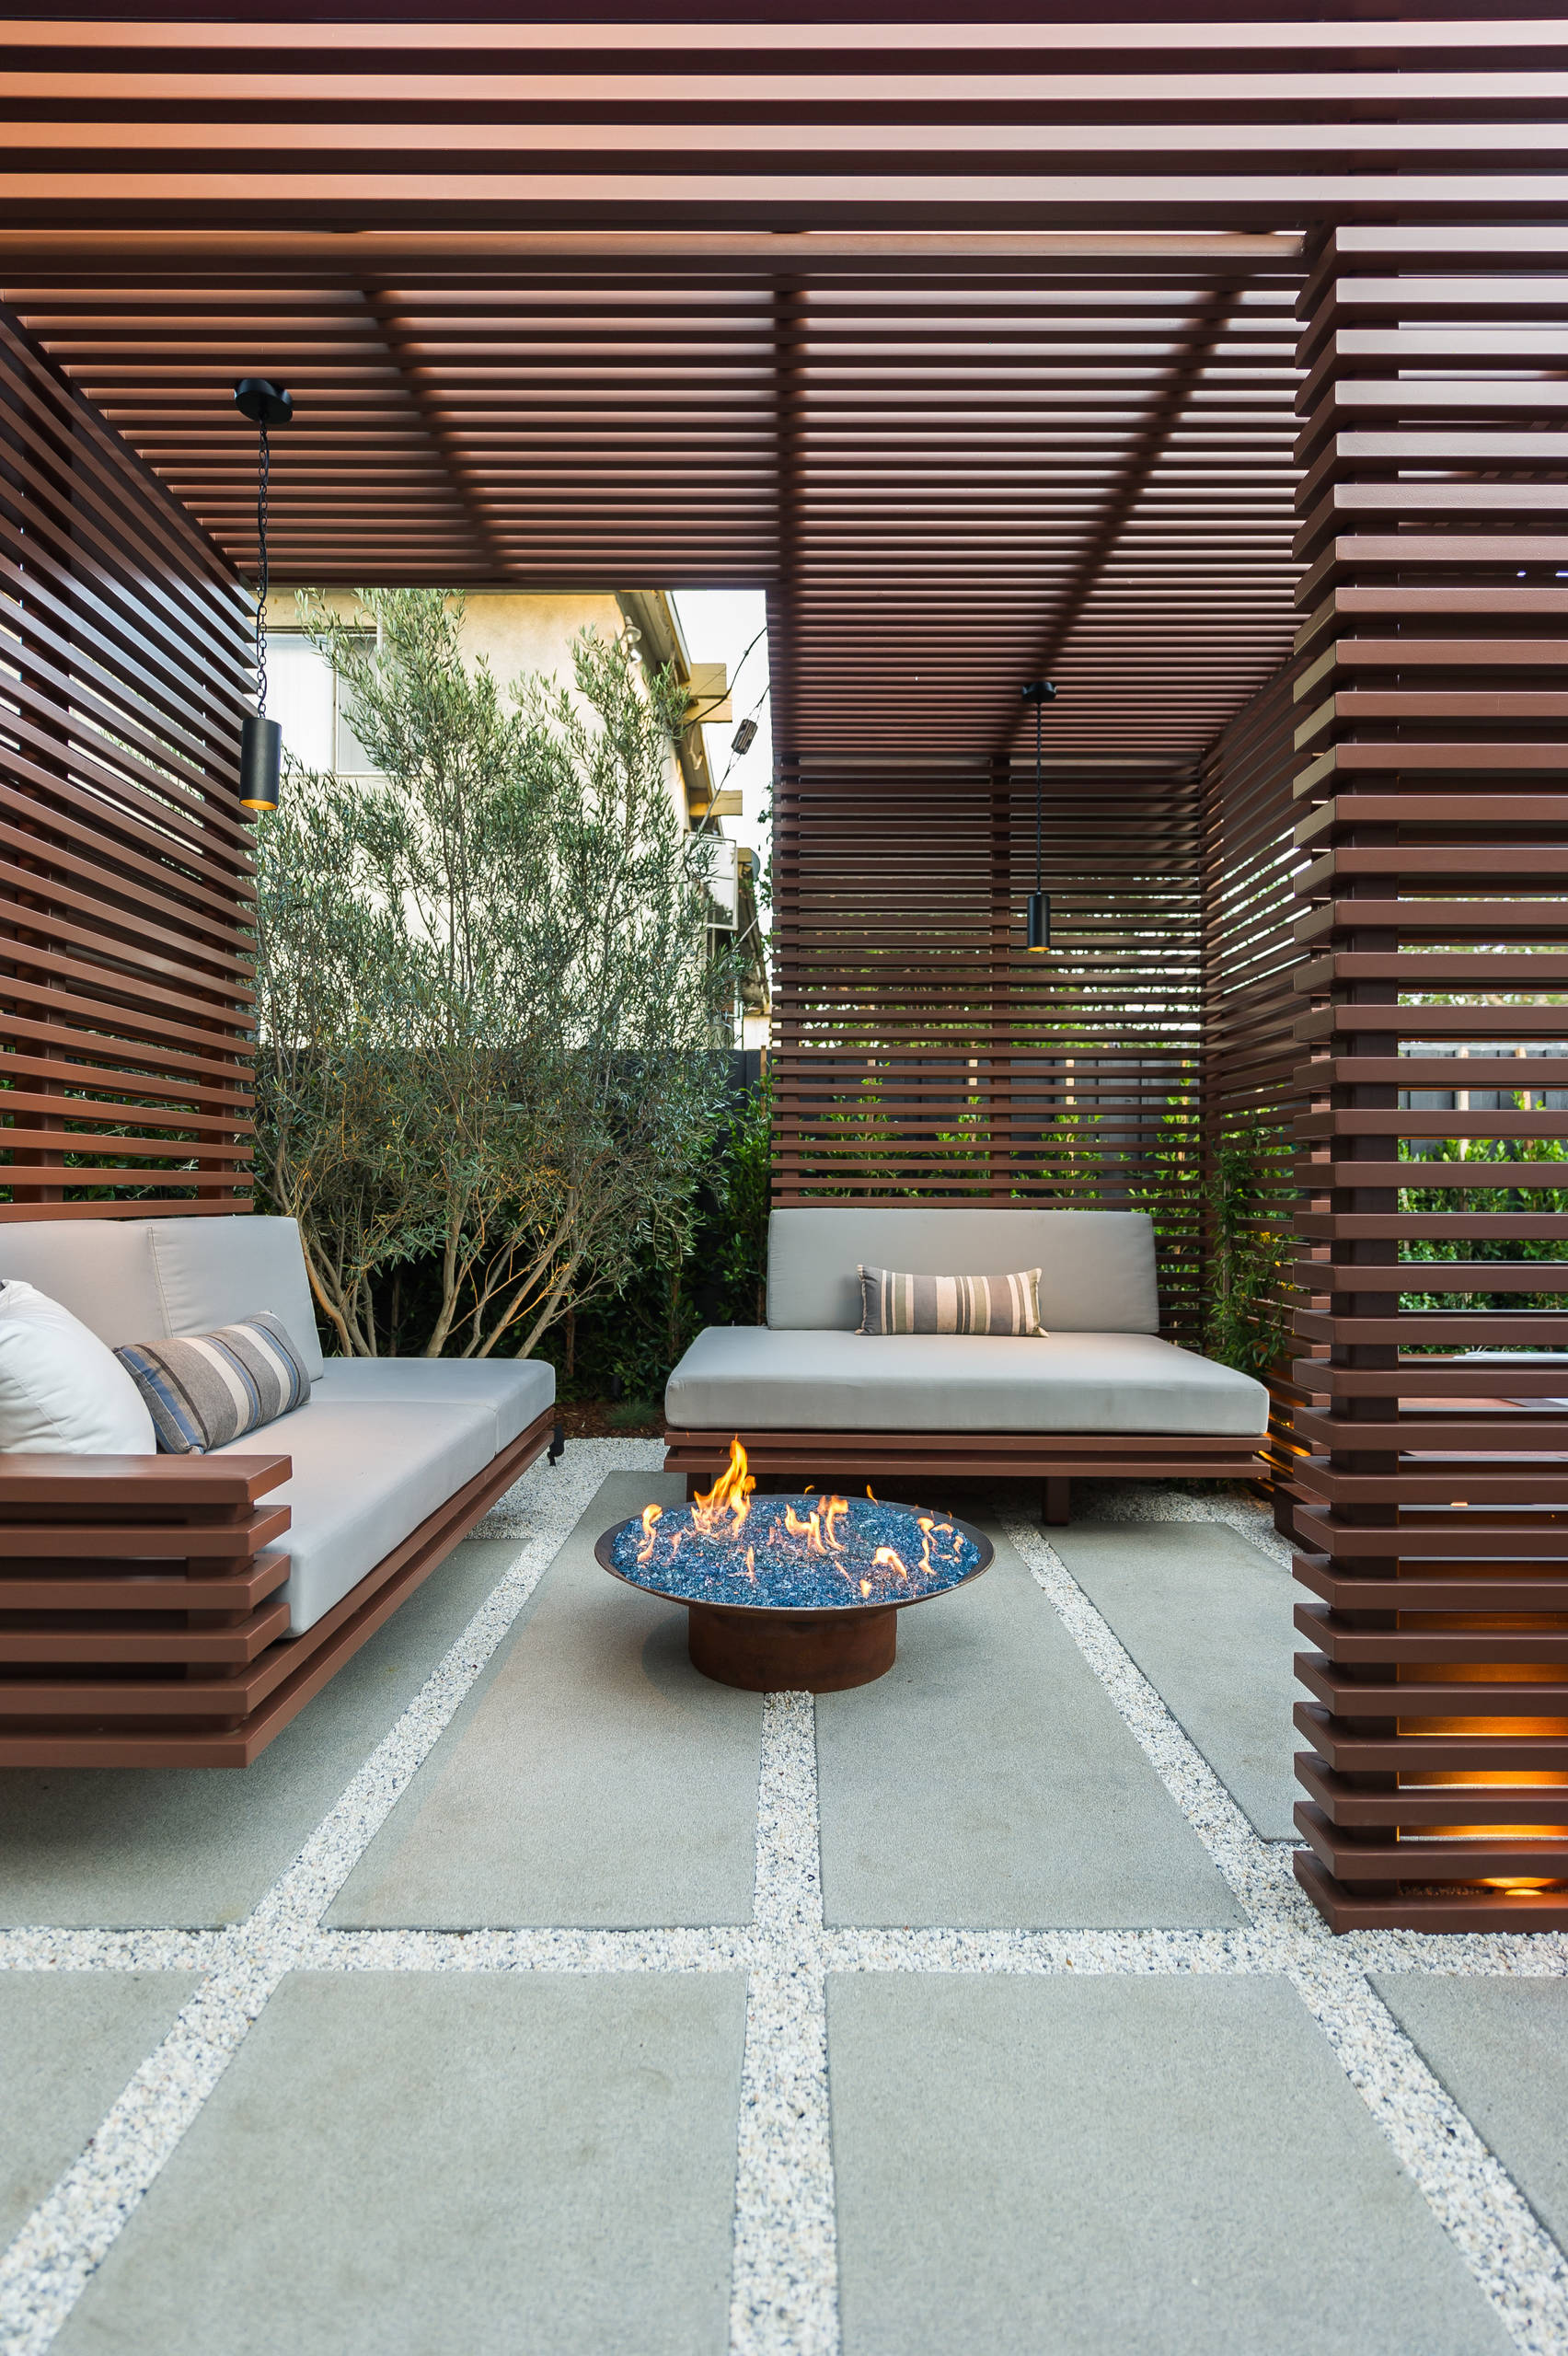 12 outdoor screen ideas that are pretty